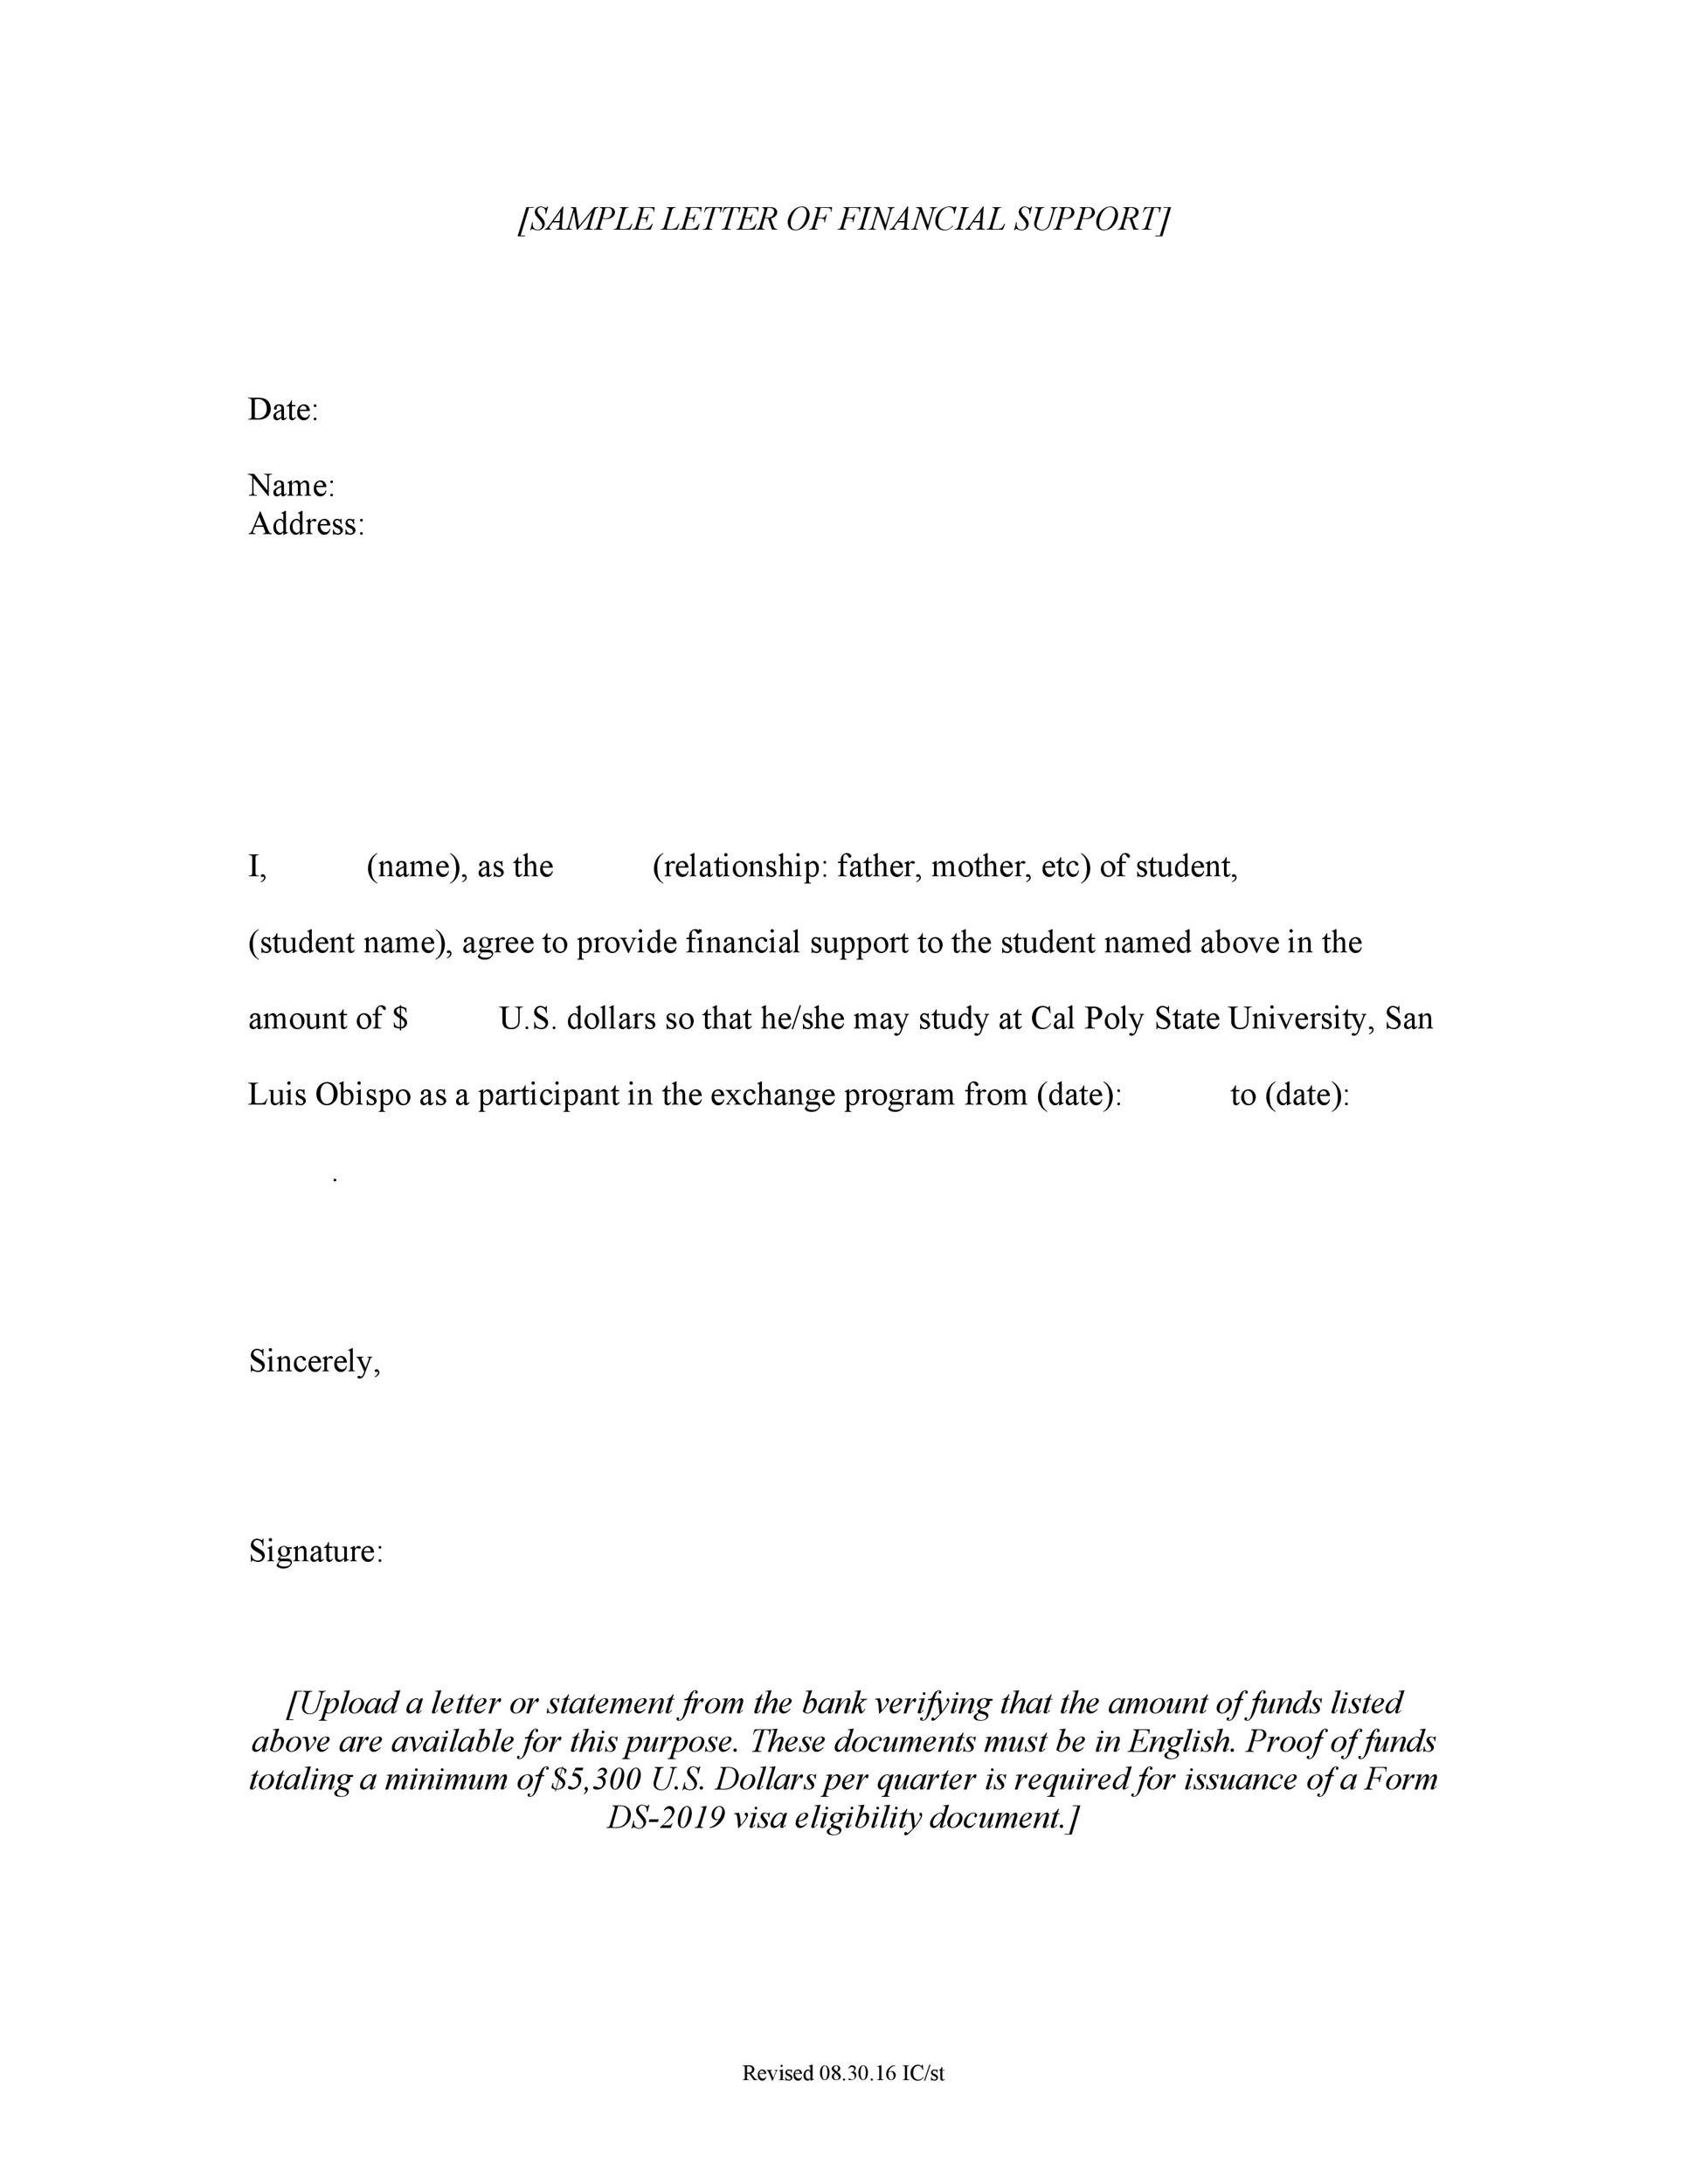 40 proven letter of support templates financial for grant printable letter of support 07 altavistaventures Choice Image